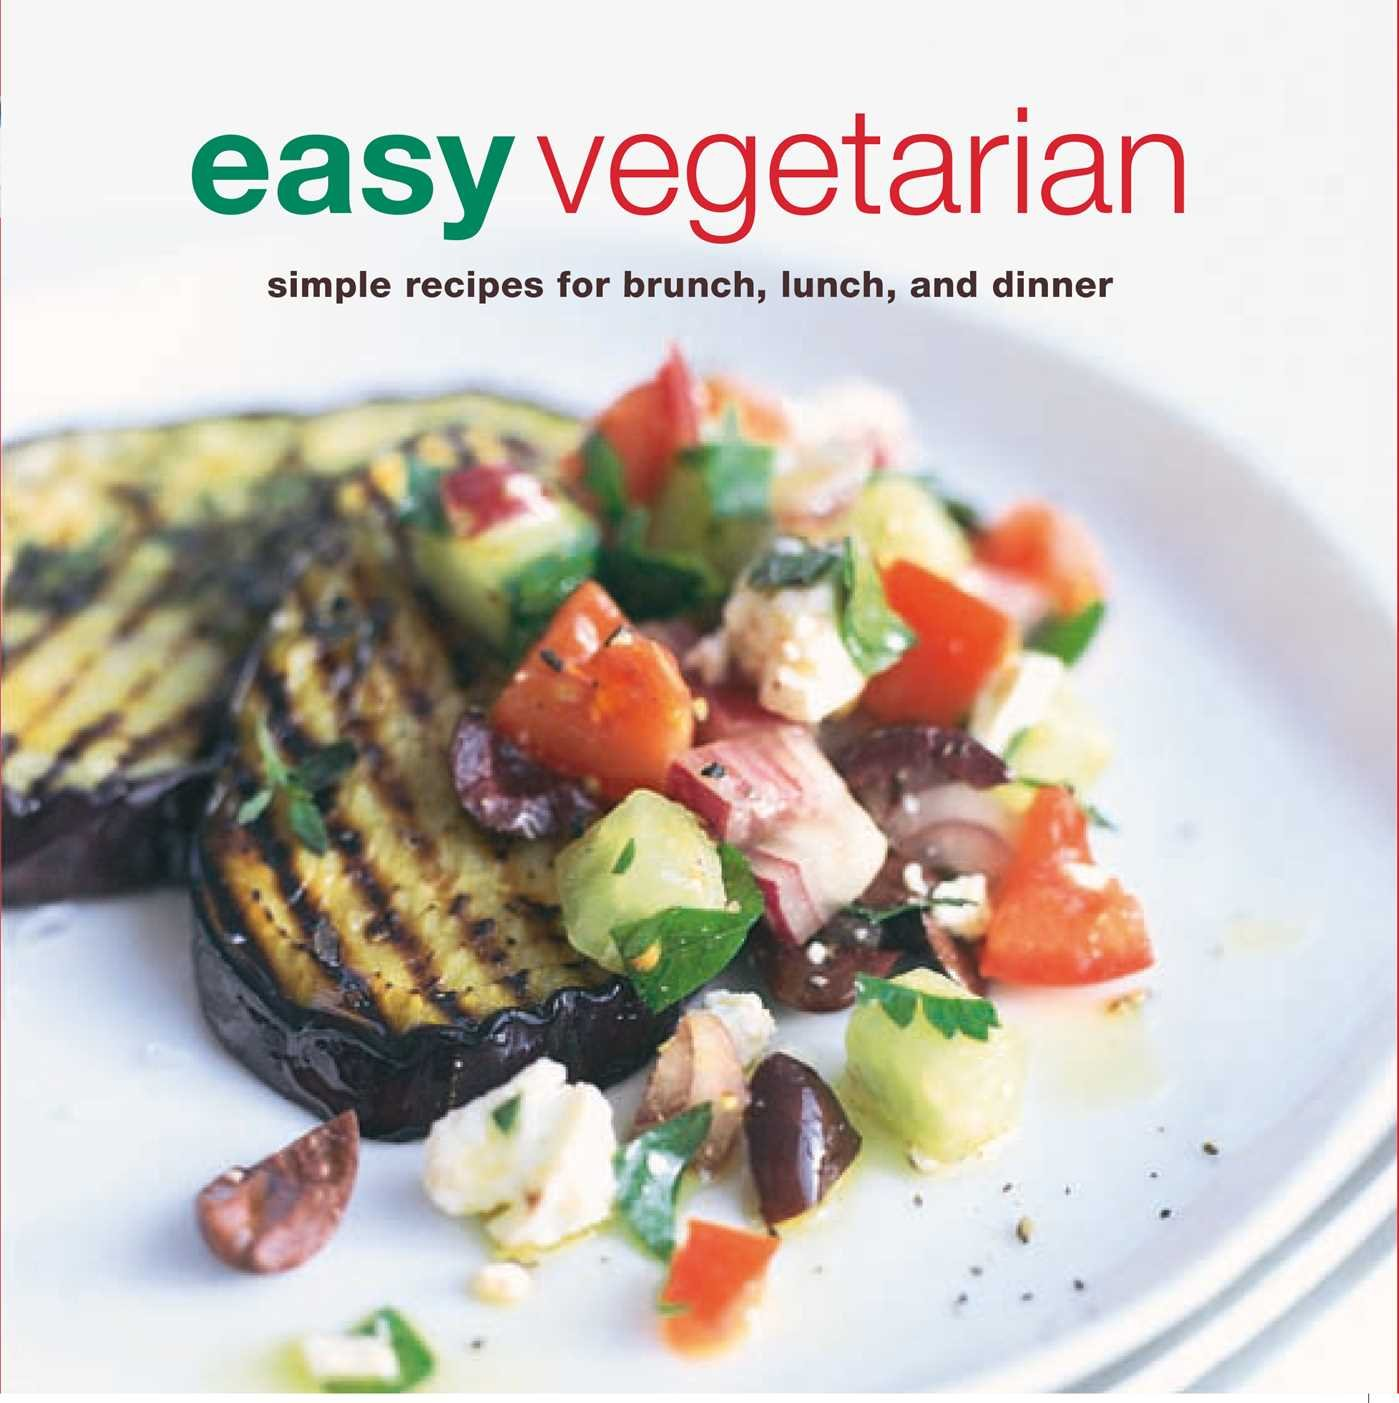 Easy vegetarian simple recipes for brunch lunch and dinner easy vegetarian simple recipes for brunch lunch and dinner ryland peters small 9781845974930 amazon books forumfinder